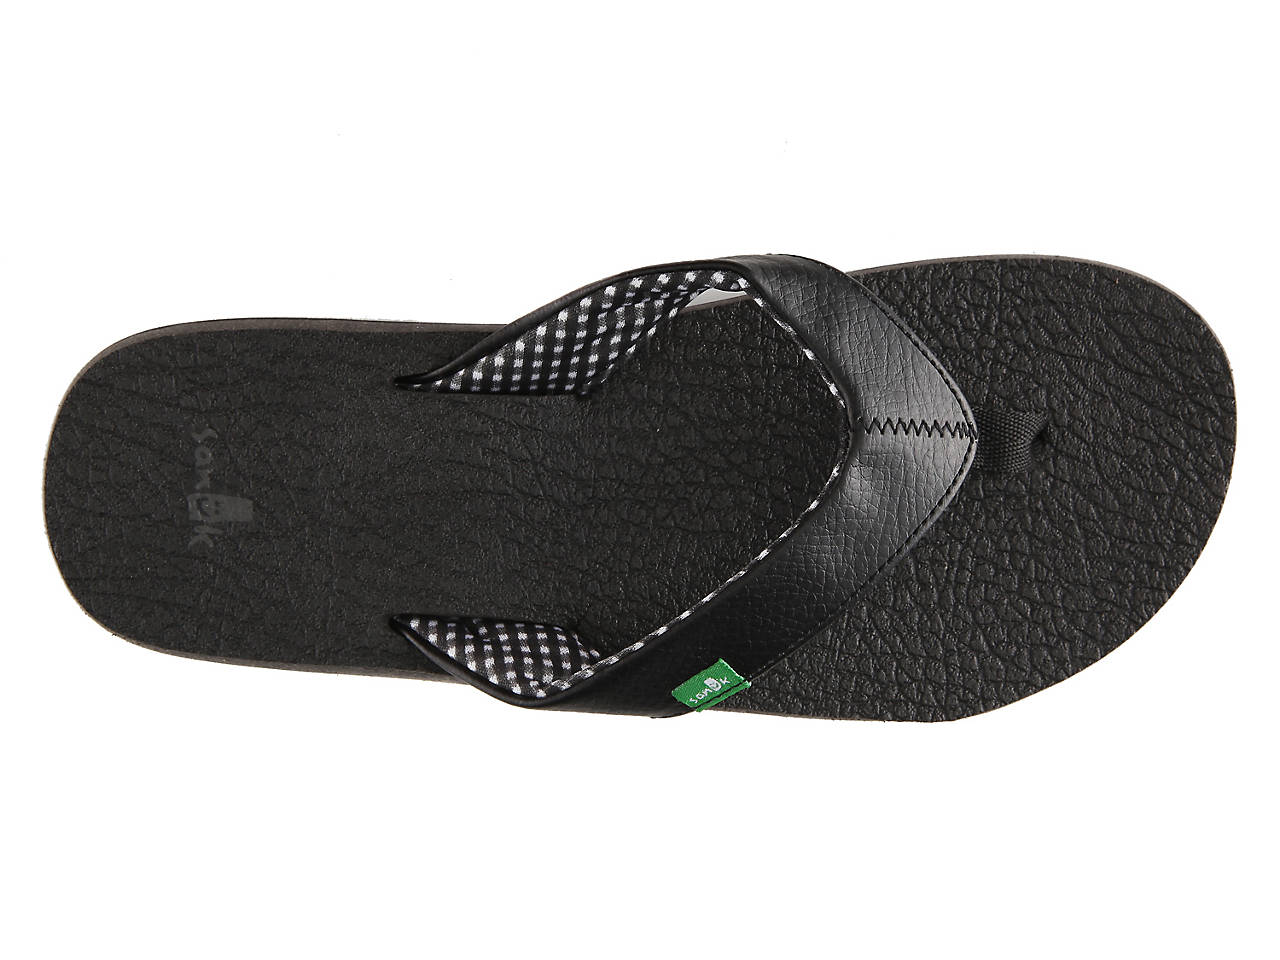 64df50f03 Home · Women s Shoes · Sandals  Yoga Mat Flip Flop. previous. Yoga Mat Flip  Flop. next